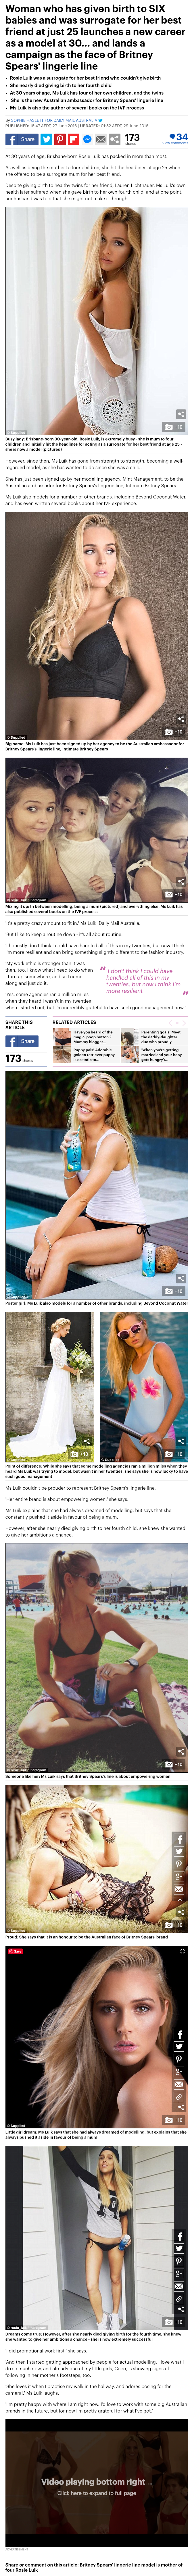 Daily Mail UK- Britney Spears' lingerie line model is_ - https___www.dailymail.co.uk_femail.png